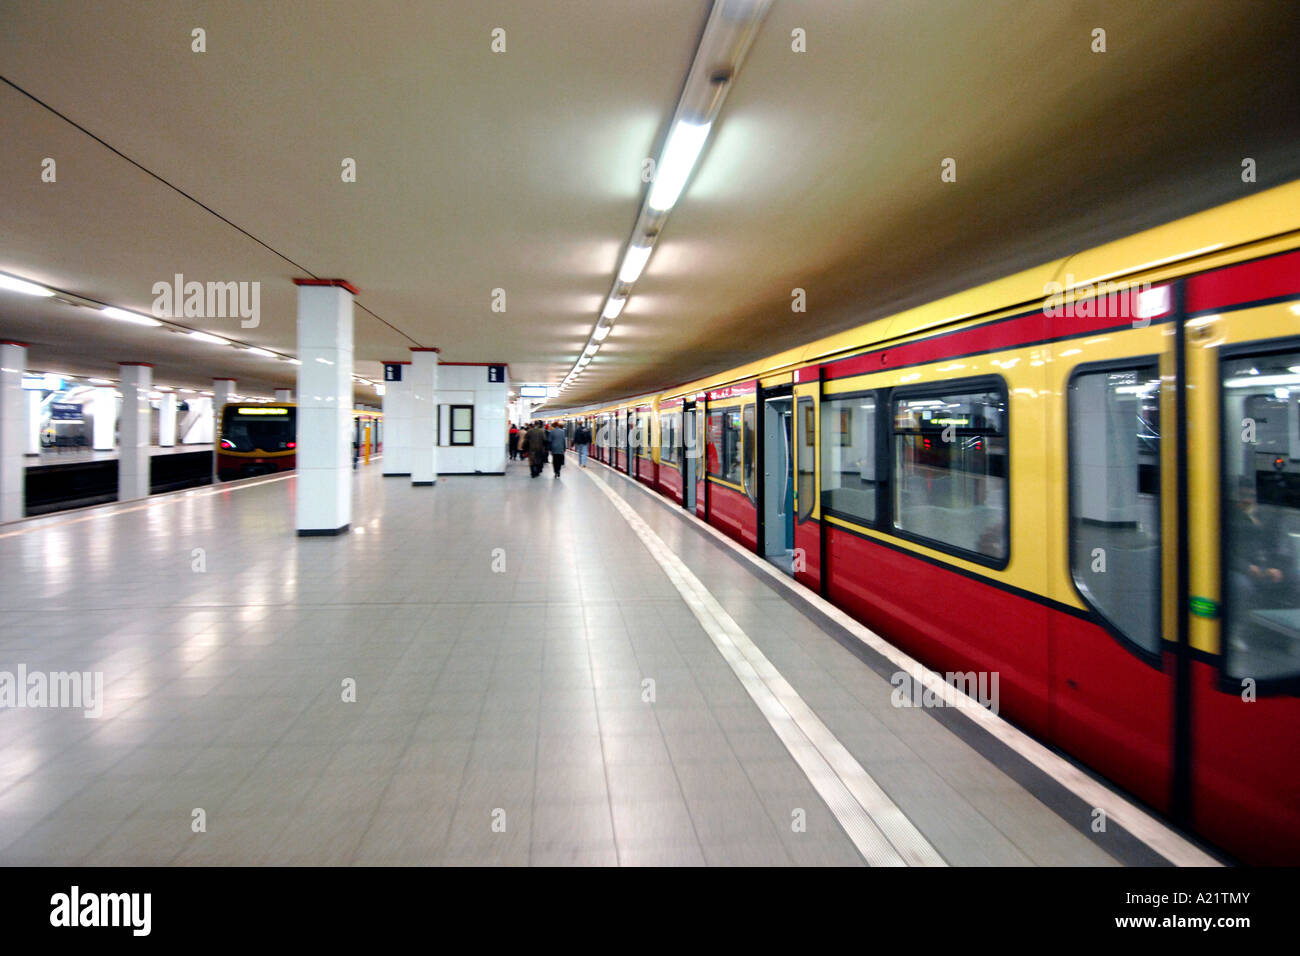 S Bahn train platform at Potsdamer Platz station in East Berlin. - Stock Image